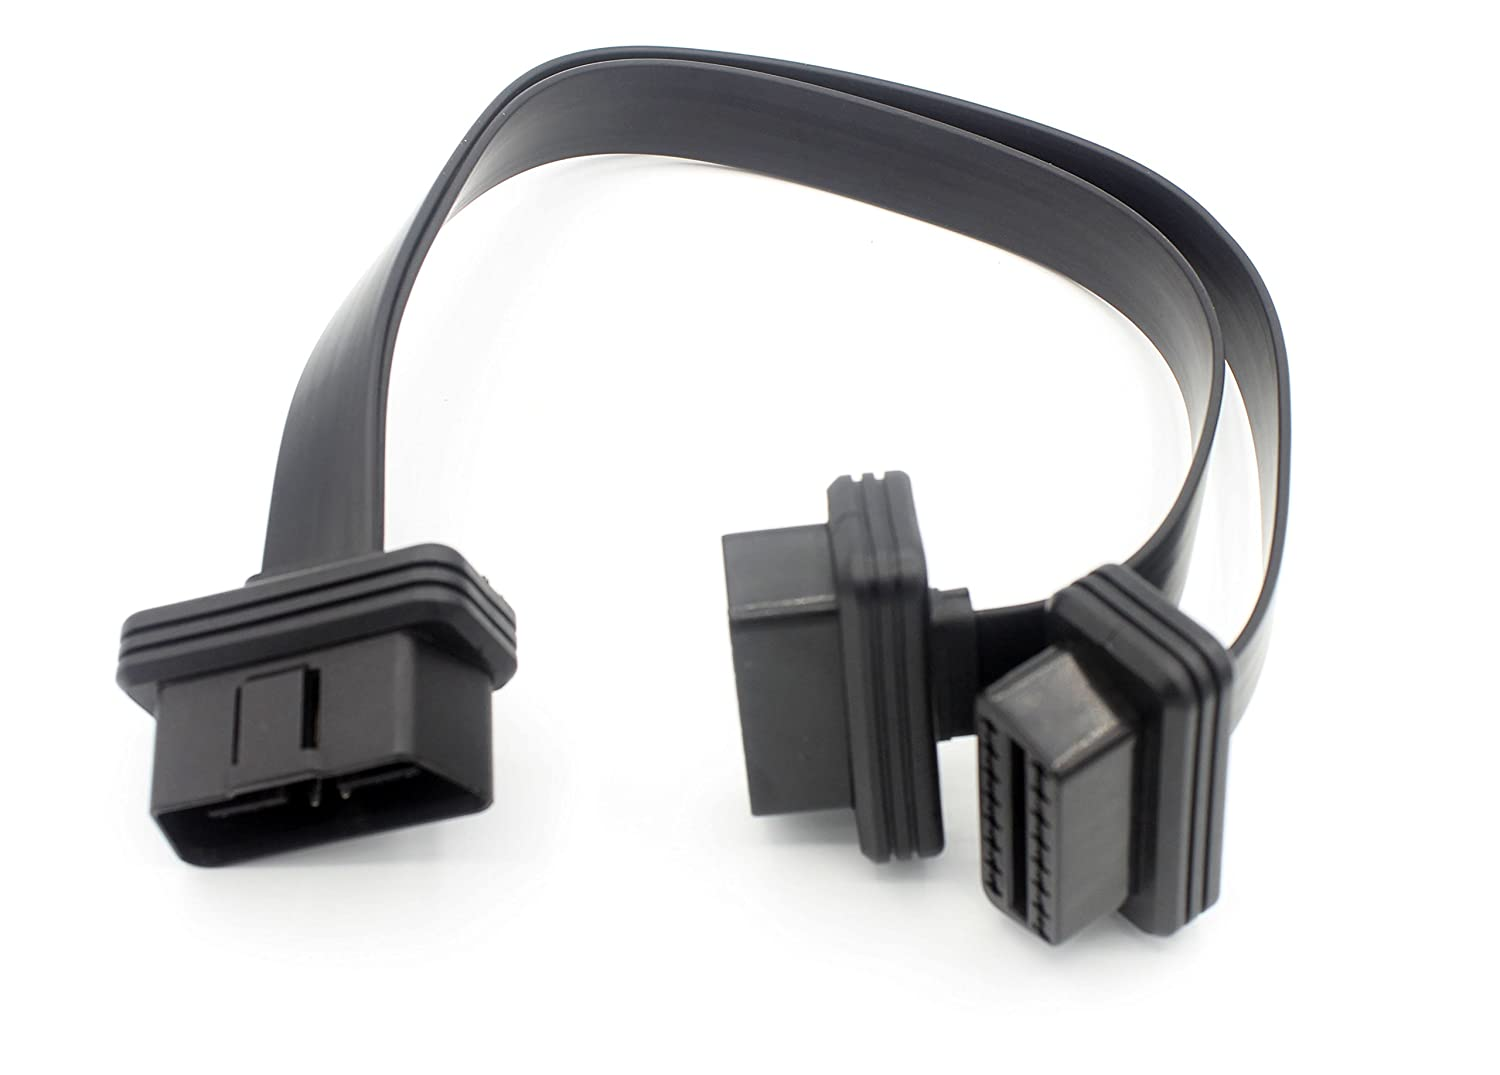 LoongGate Ultra Low Profile Super Long OBD-II OBD2 Extension Cable - Flat Noodle Cable Full 16 pin Pass-through for Bluetooth Wifi USB ECU Readers OBDII Code Scanners - 3 Meters(9.8ft) Shenzhen Hengye